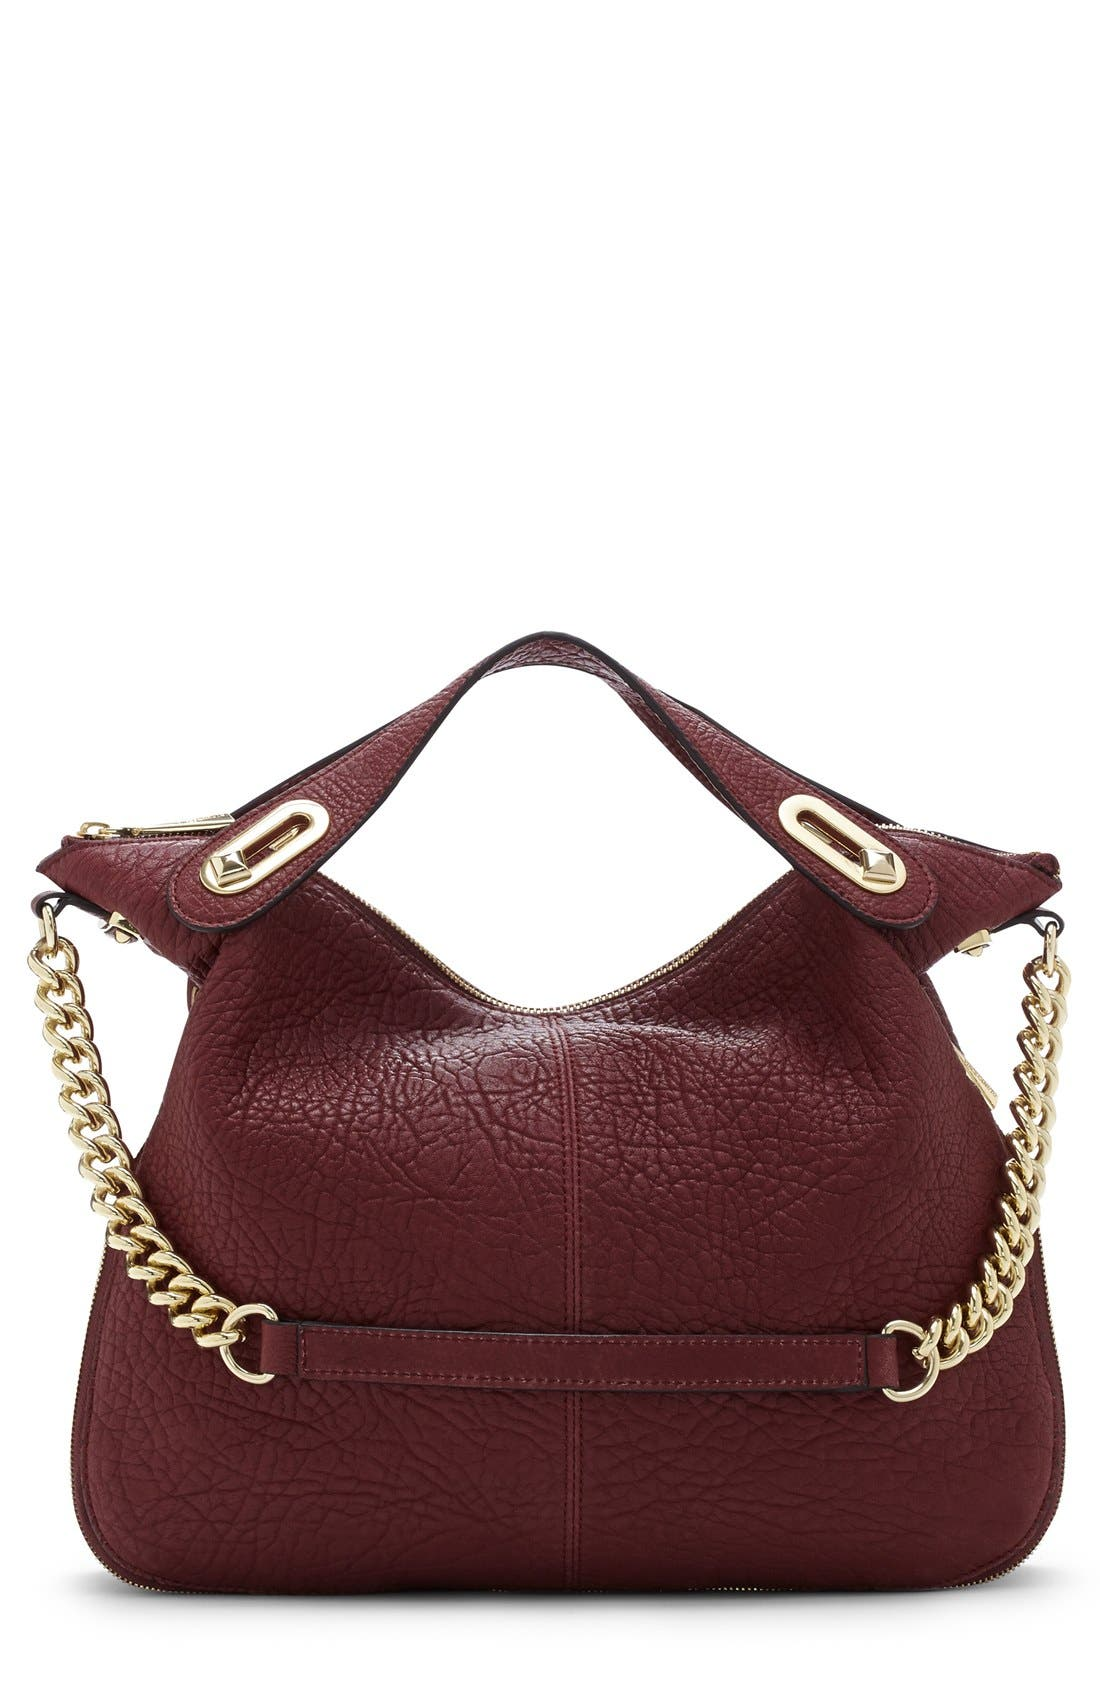 Alternate Image 1 Selected - Vince Camuto 'Clair' Satchel